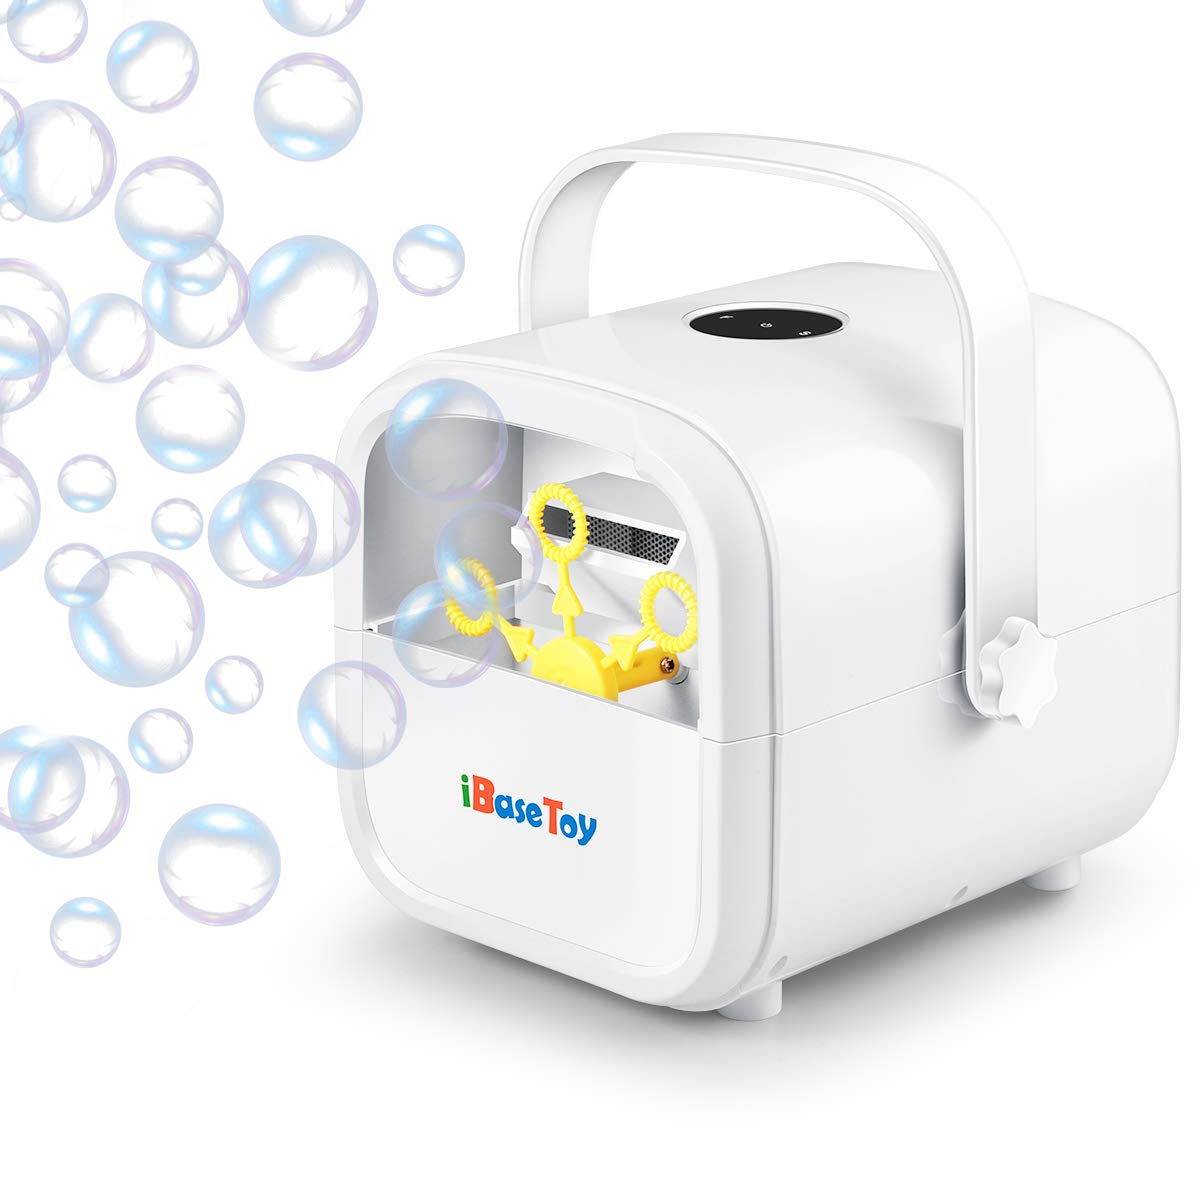 iBaseToy Portable Bubble Machine, Bubbles Maker Machine for Kids with 2 Speed Lever, Automatic Bubble Blower with High Output for Outdoor/Indoor Use, Powered by Plug-in or Batteries